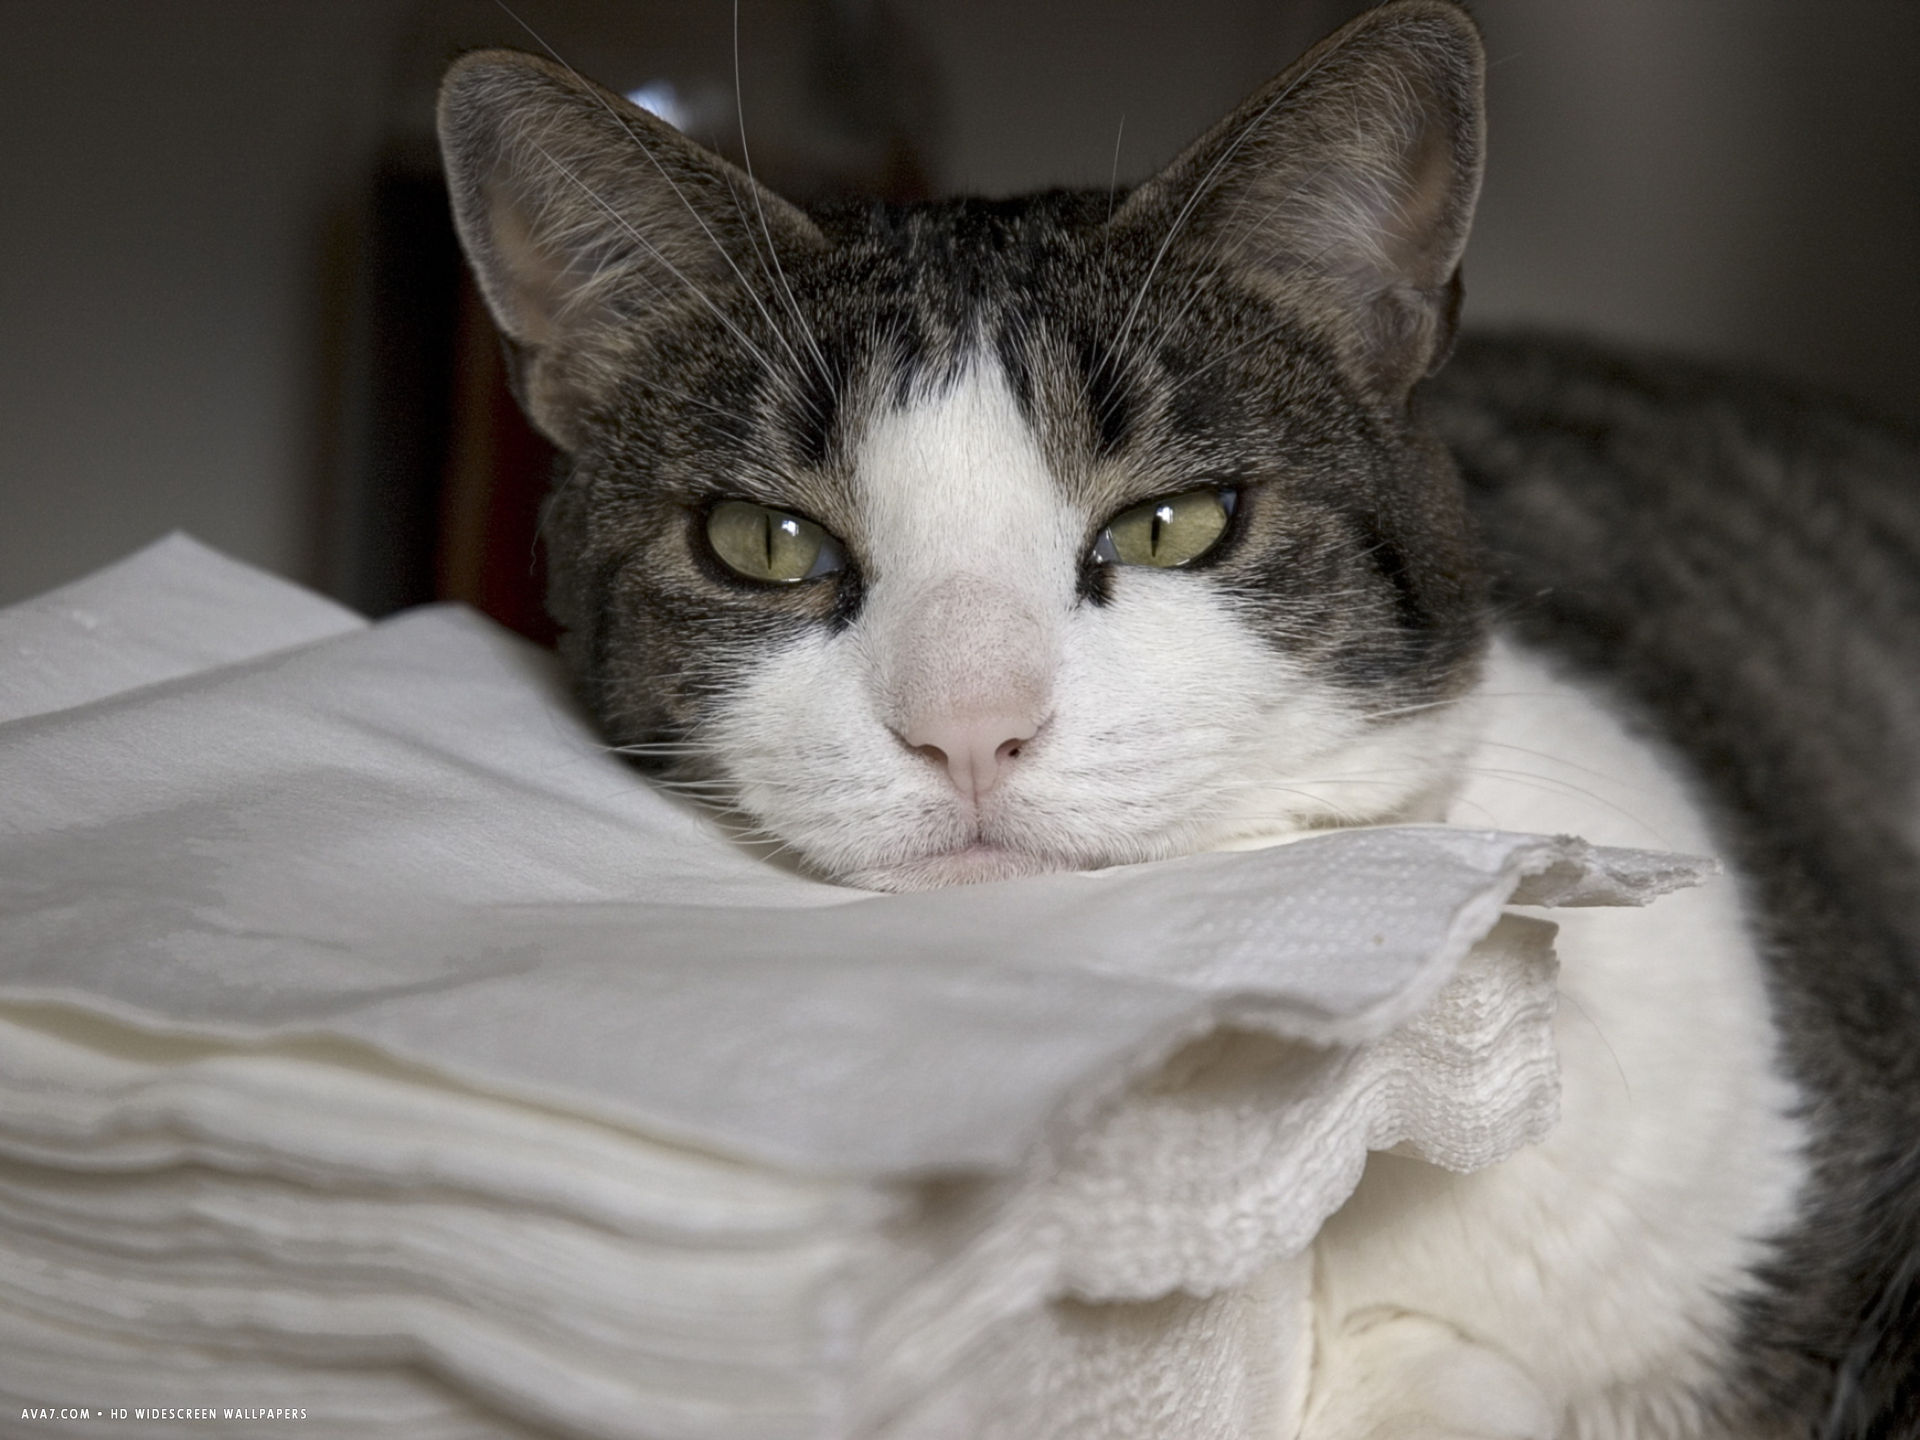 cat sleepily rests its chin on a stack of napkins